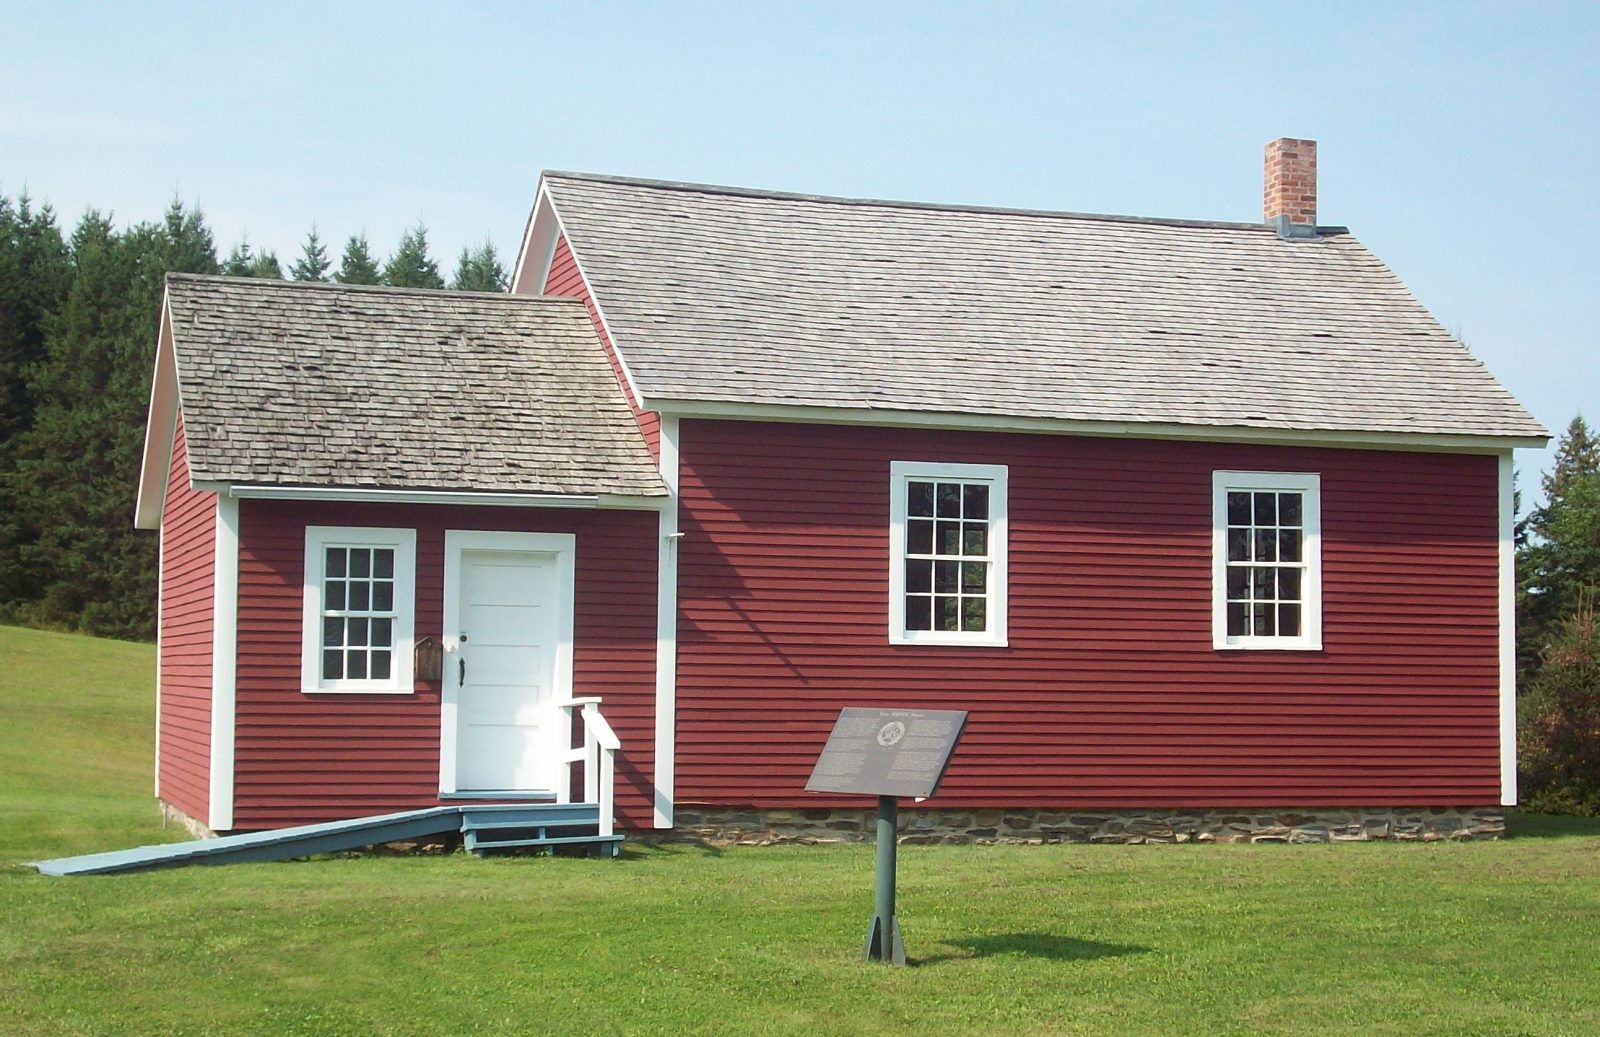 Visitors Welcome At The Little Hyatt One Room Schoolhouse